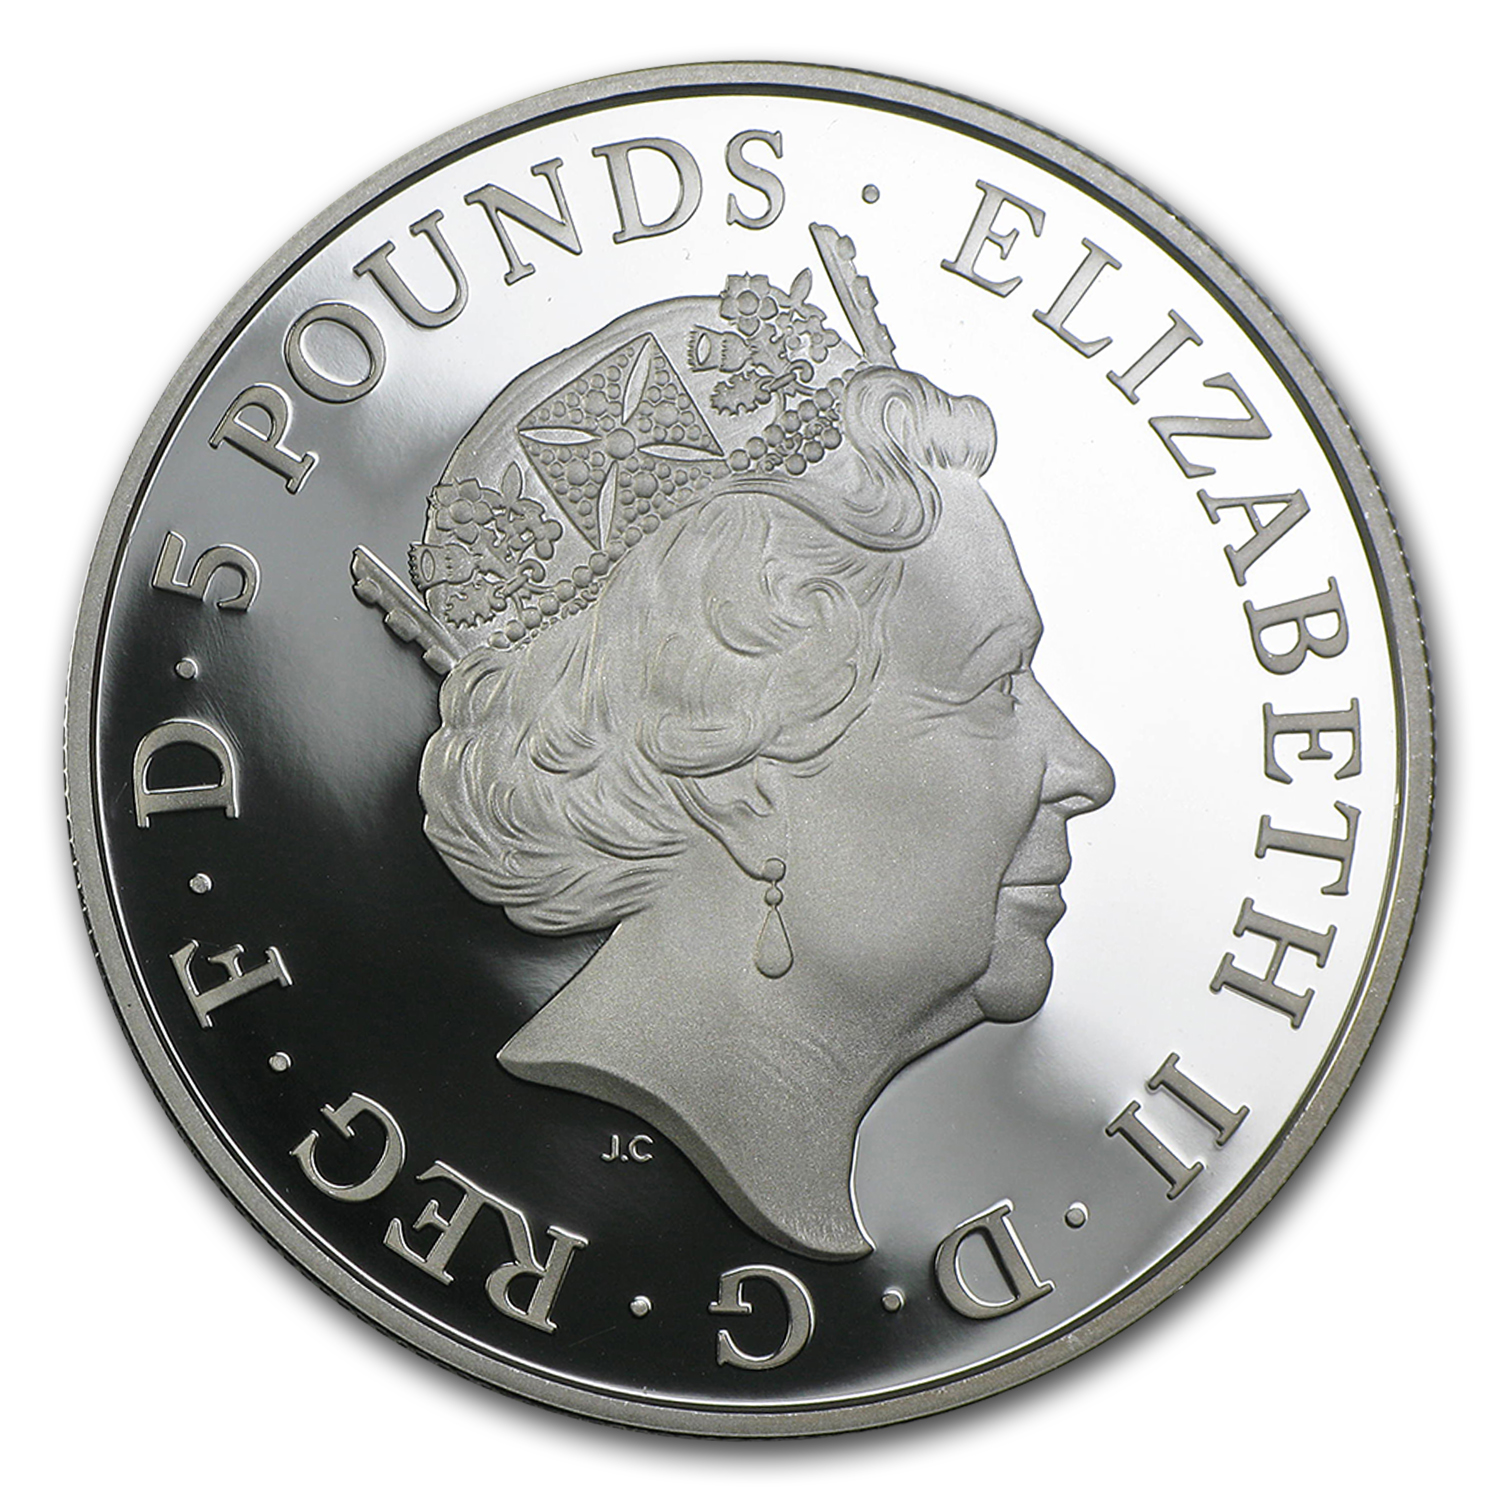 2015 Great Britain £5 Silver Royal Birth Proof